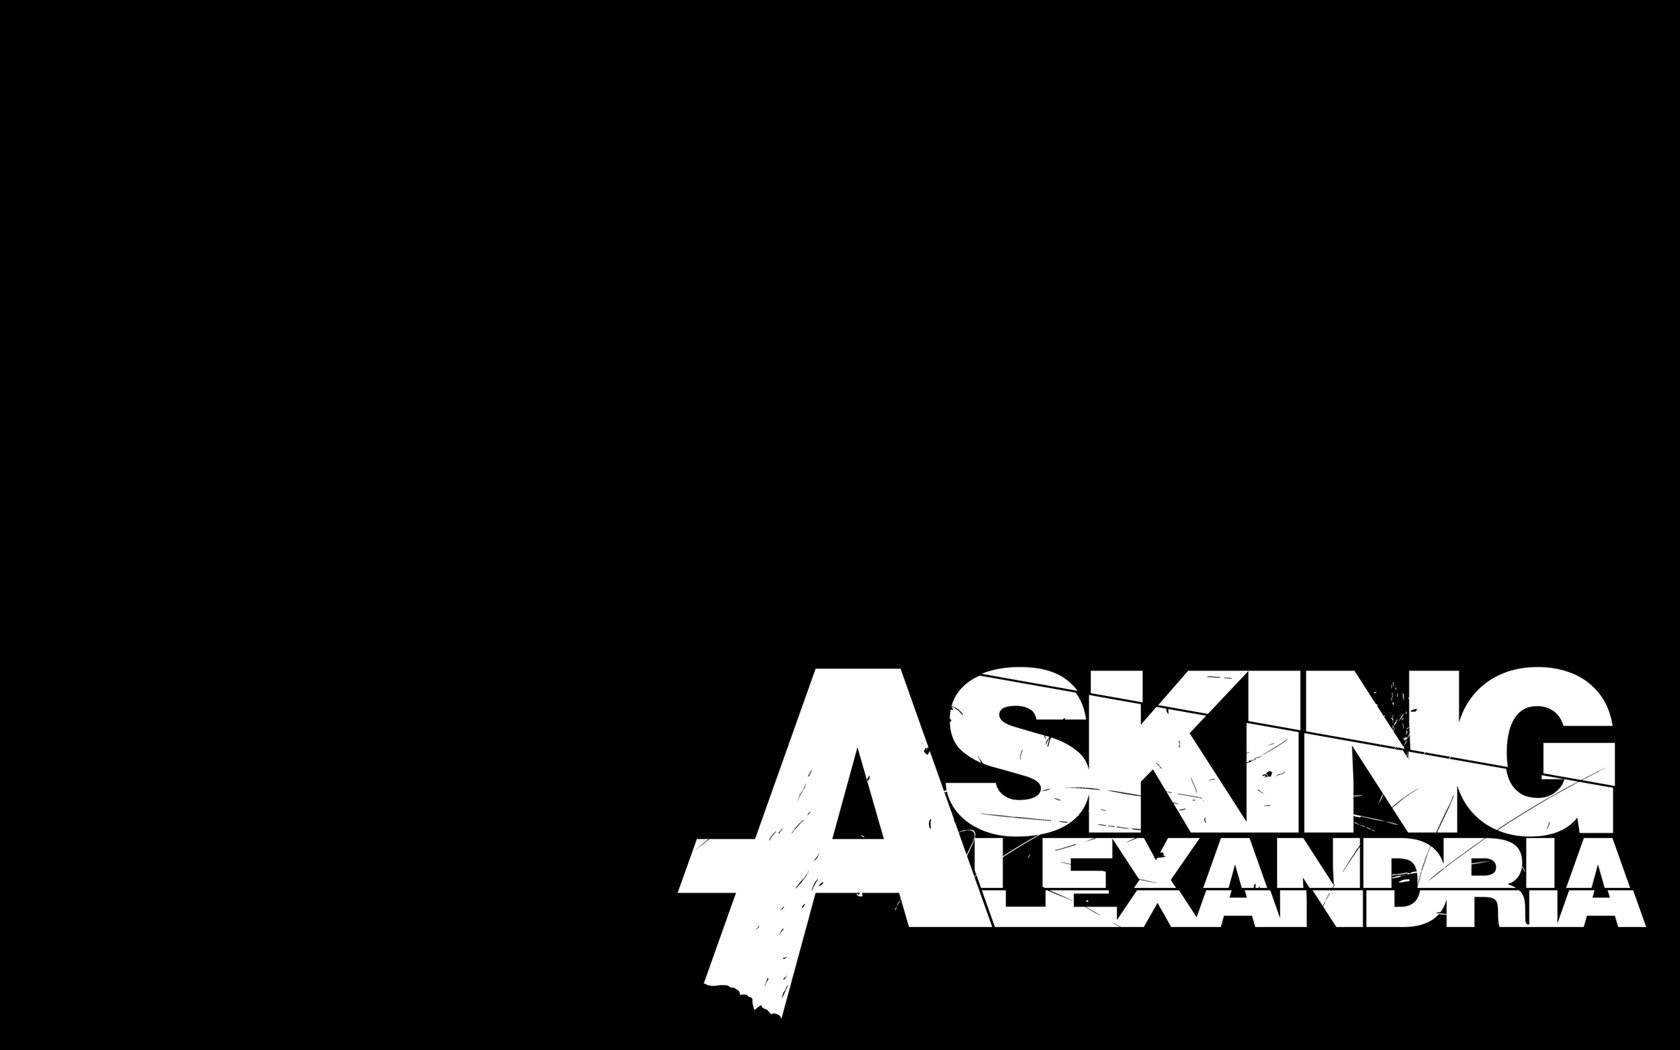 asking alexandria wallpaper background 1680x1050